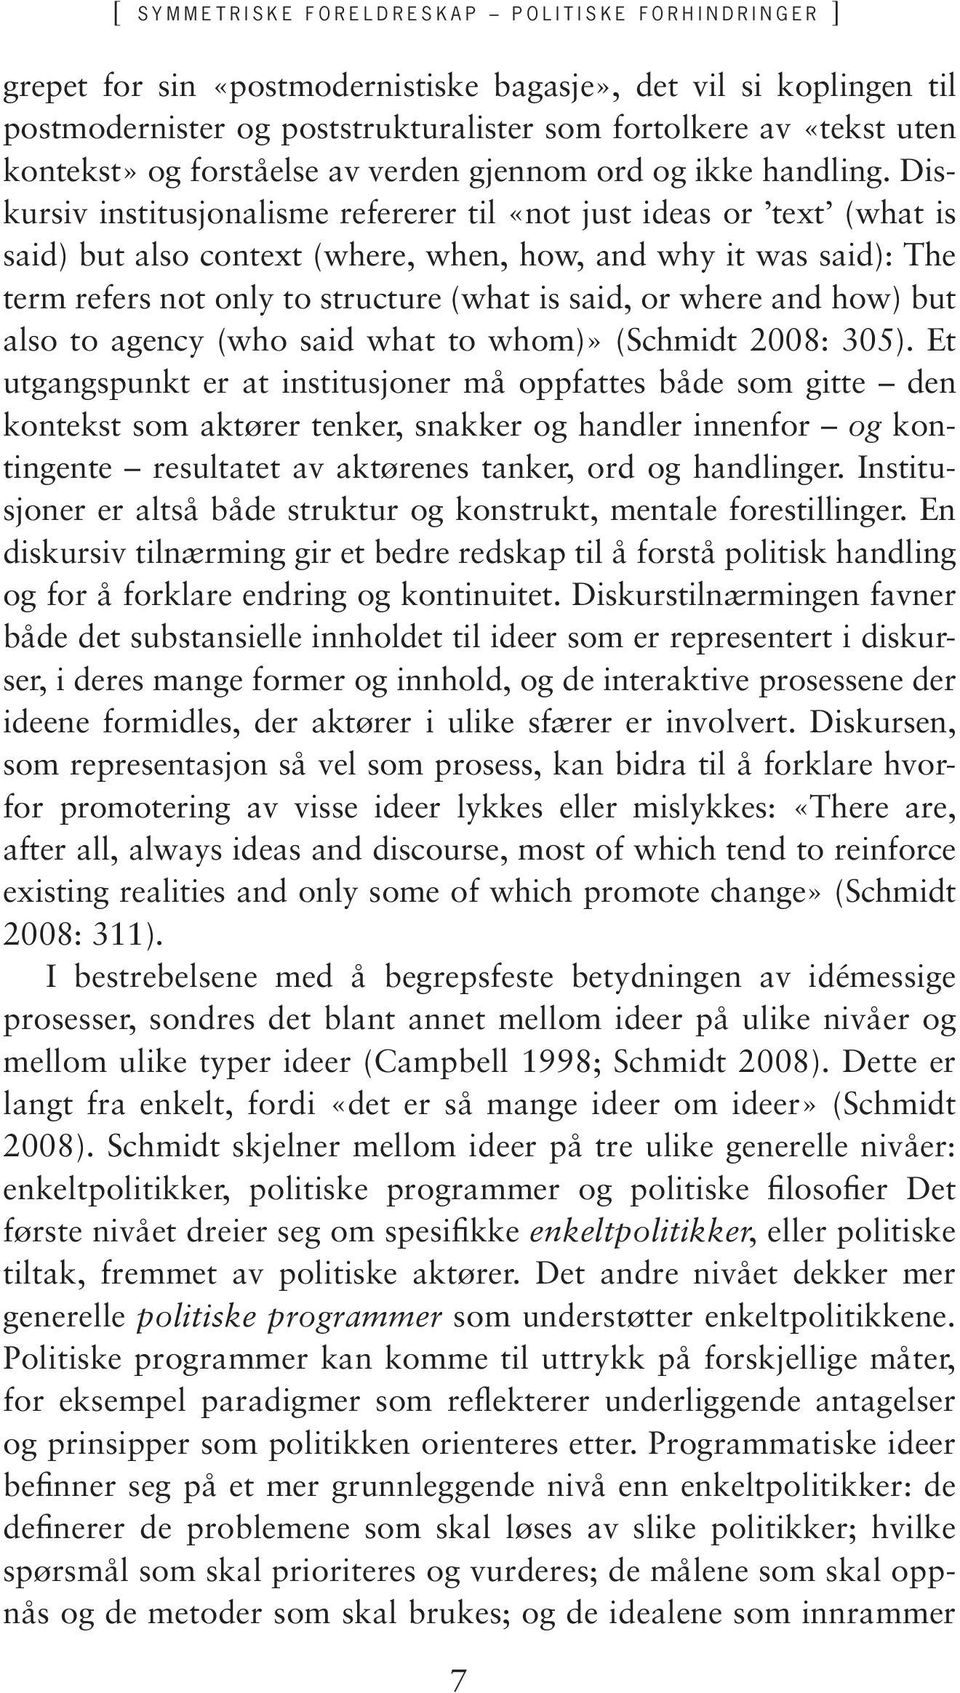 Diskursiv institusjonalisme refererer til «not just ideas or text (what is said) but also context (where, when, how, and why it was said): The term refers not only to structure (what is said, or